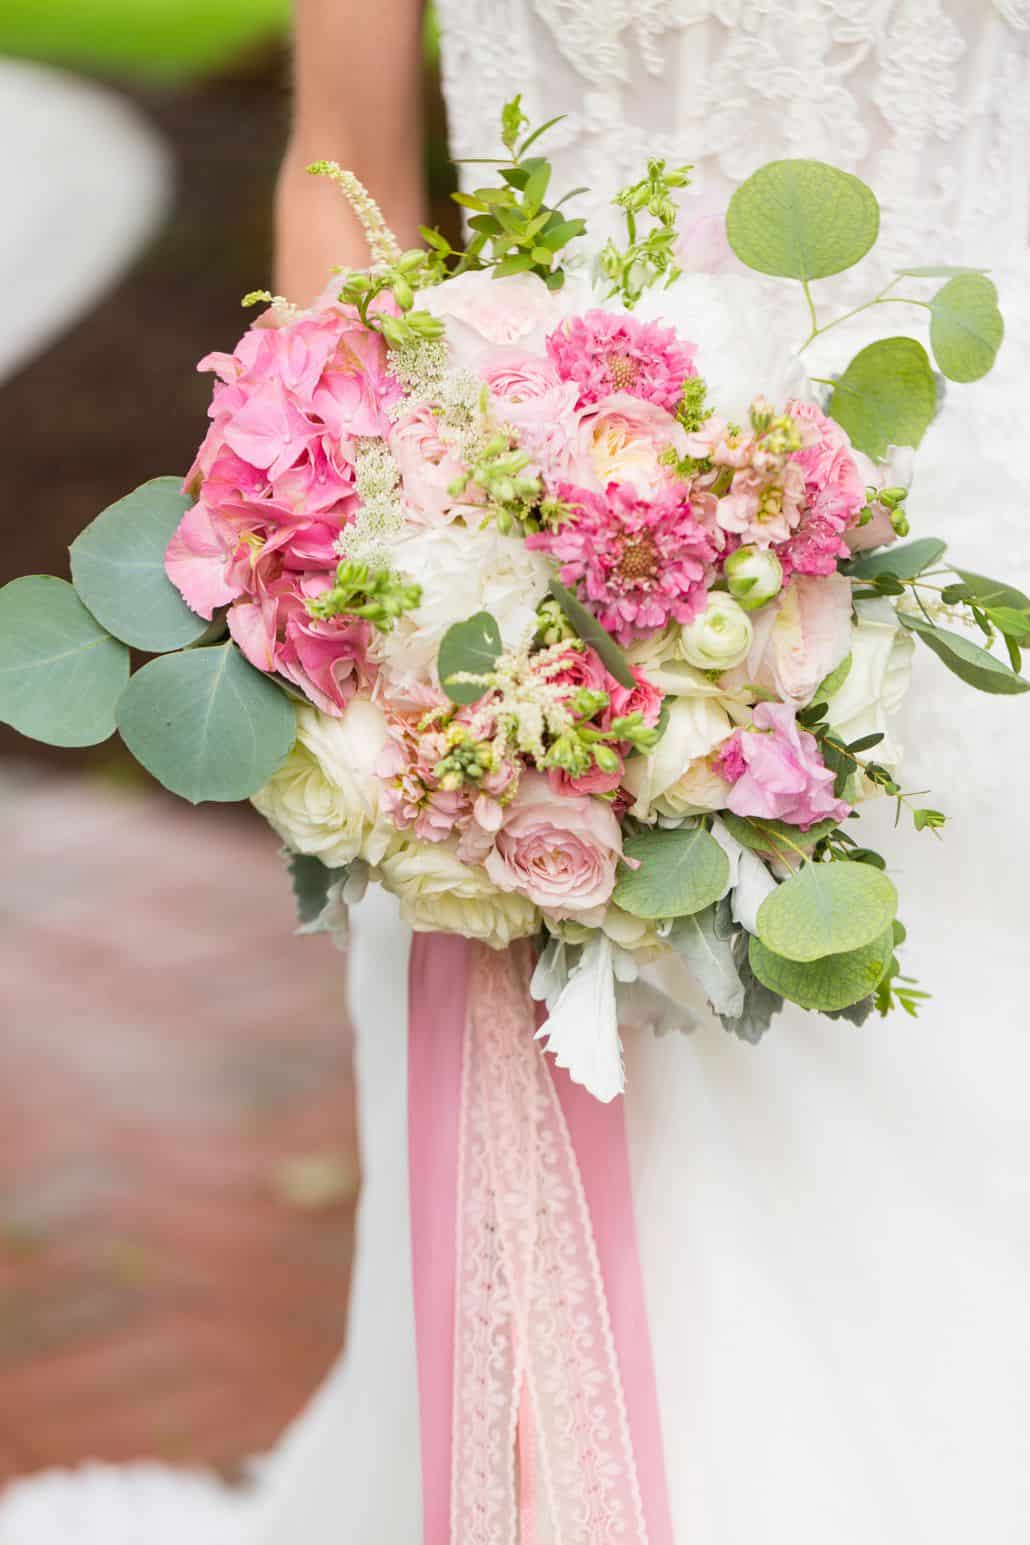 Bride In Lace Gown Holds Pink Cream And Green Wedding Bouquet